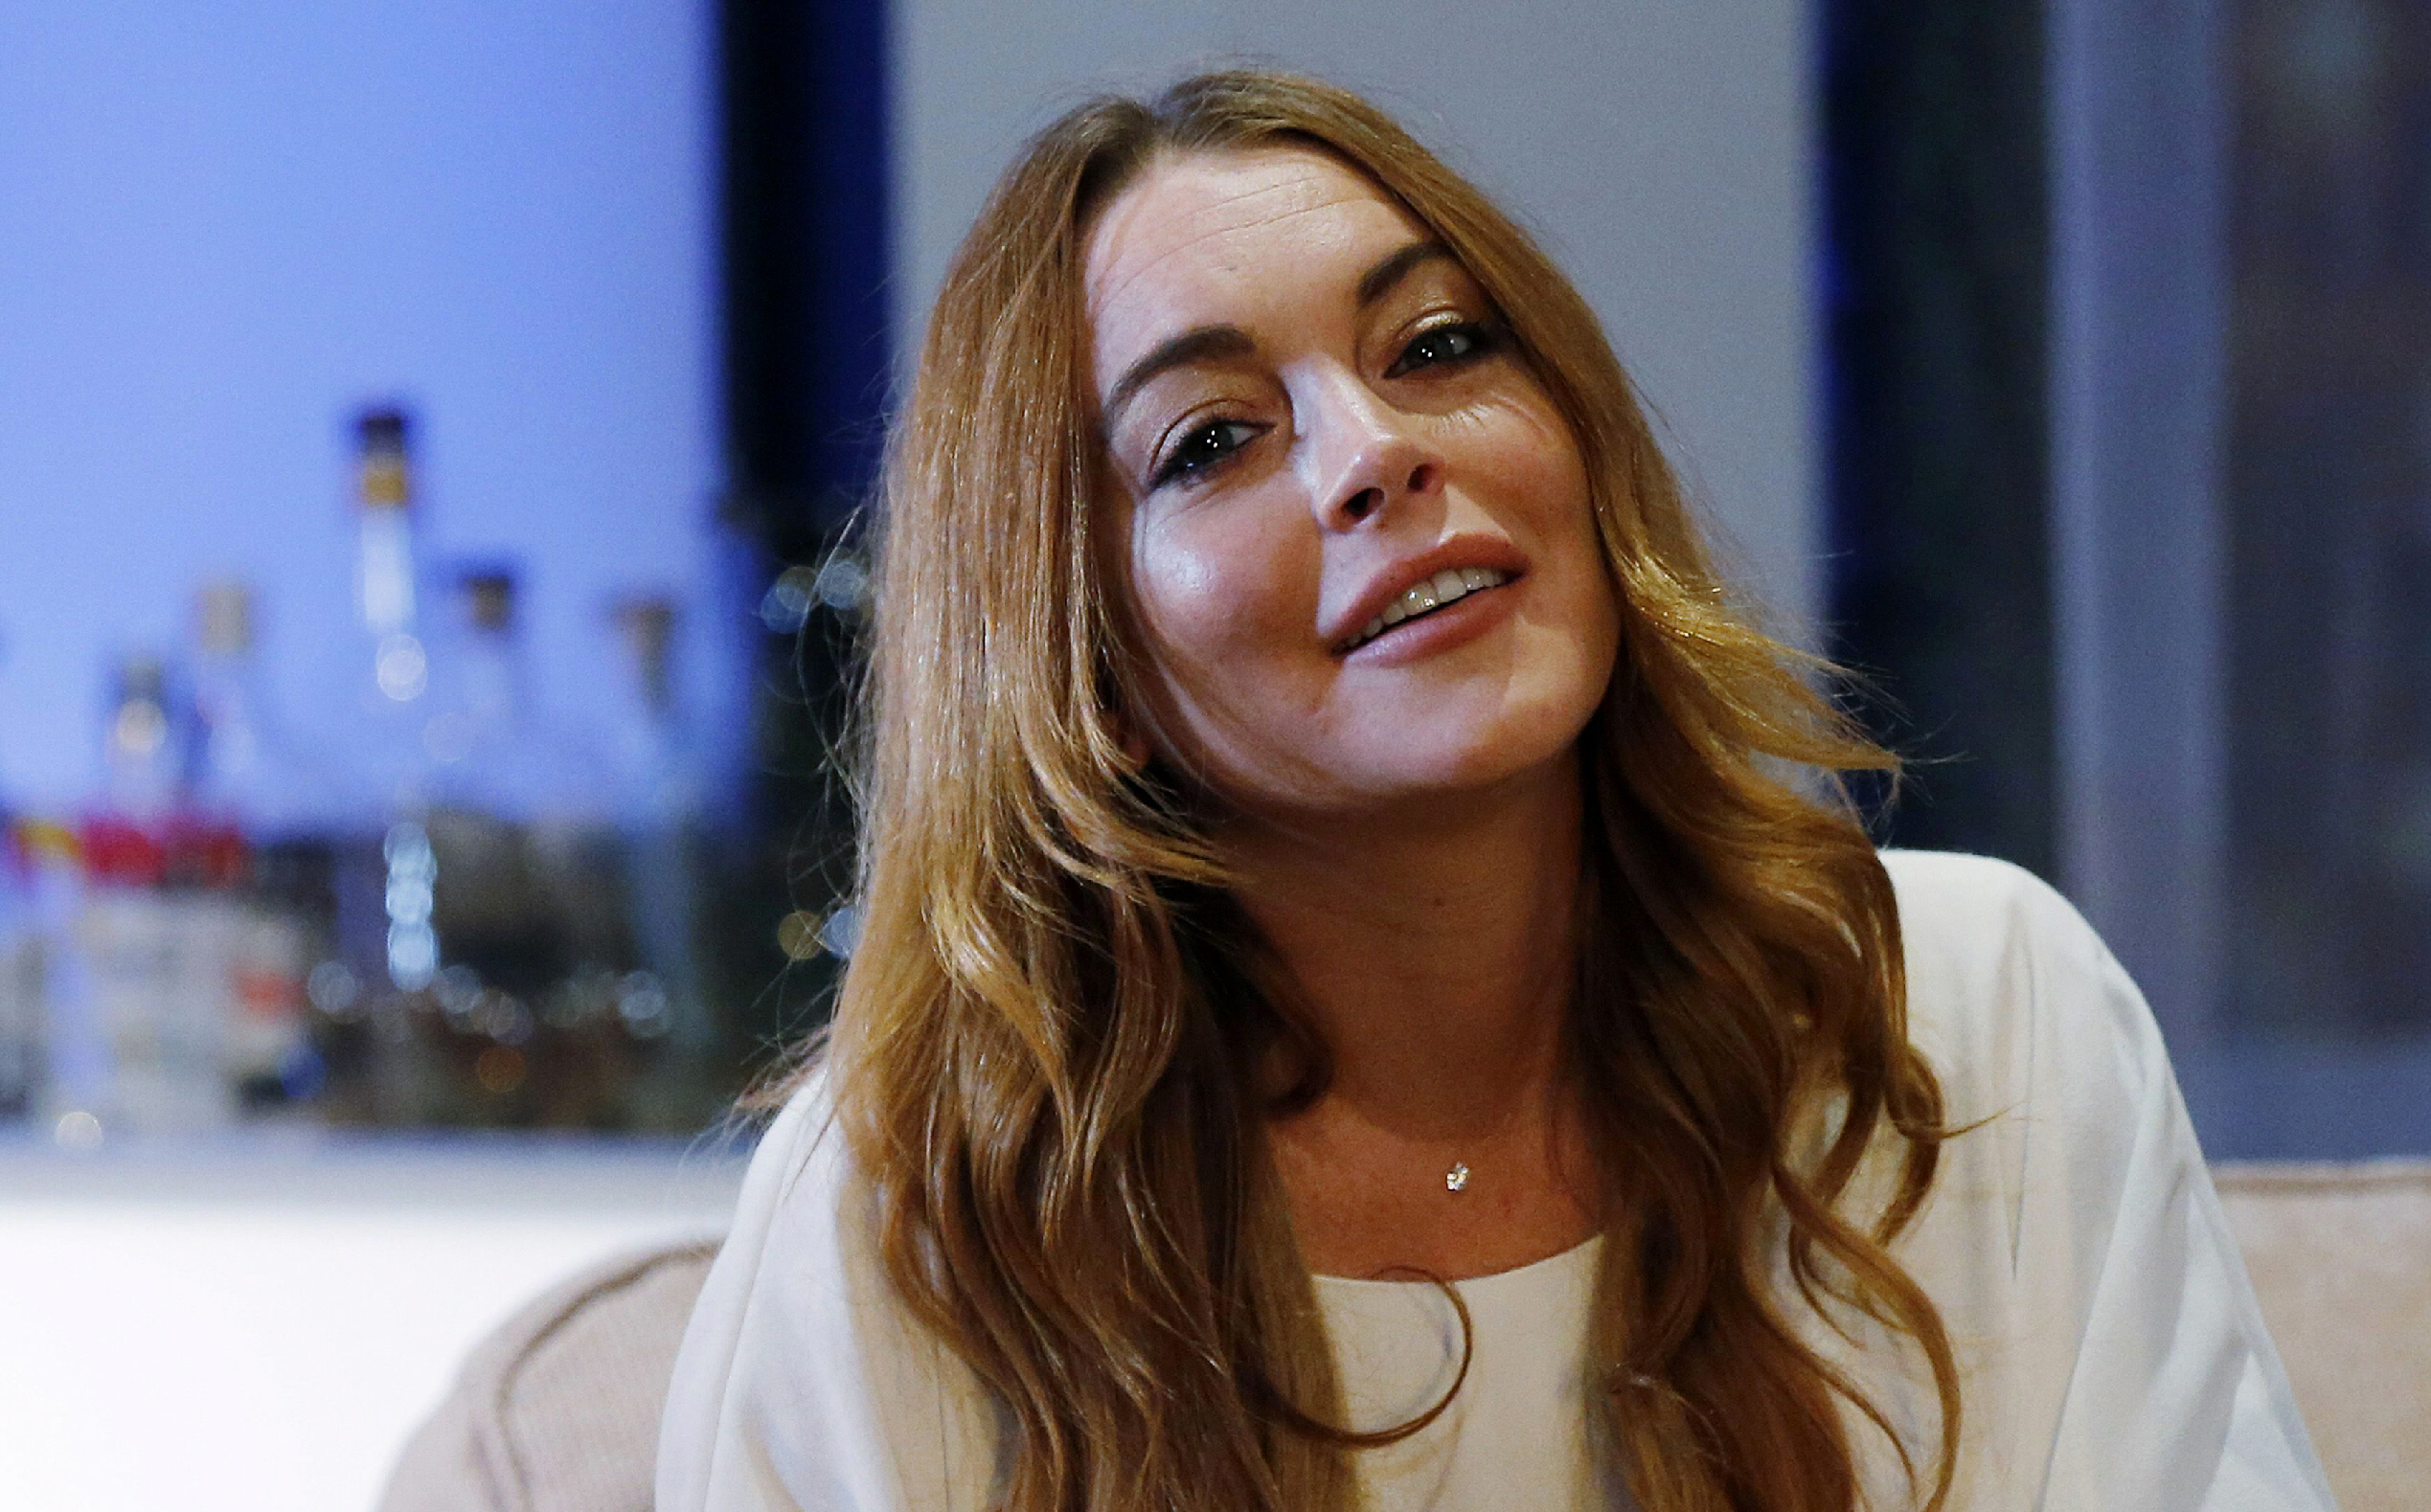 Lindsay Lohan has had a trying year thus far